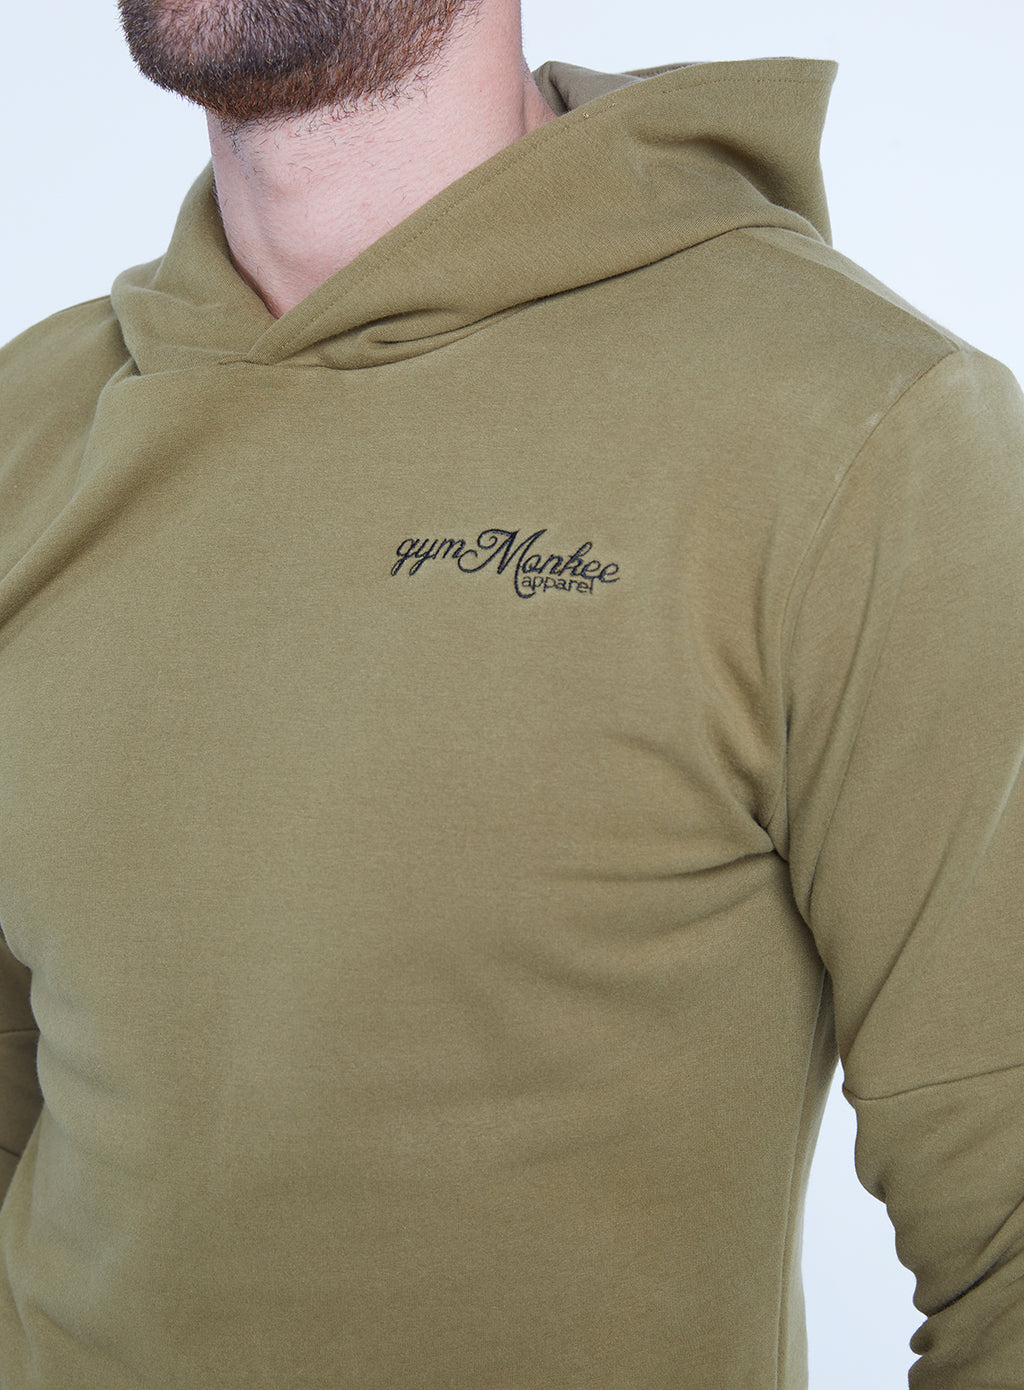 Gym Monkee - Khaki Hoodie FRONT CHEST